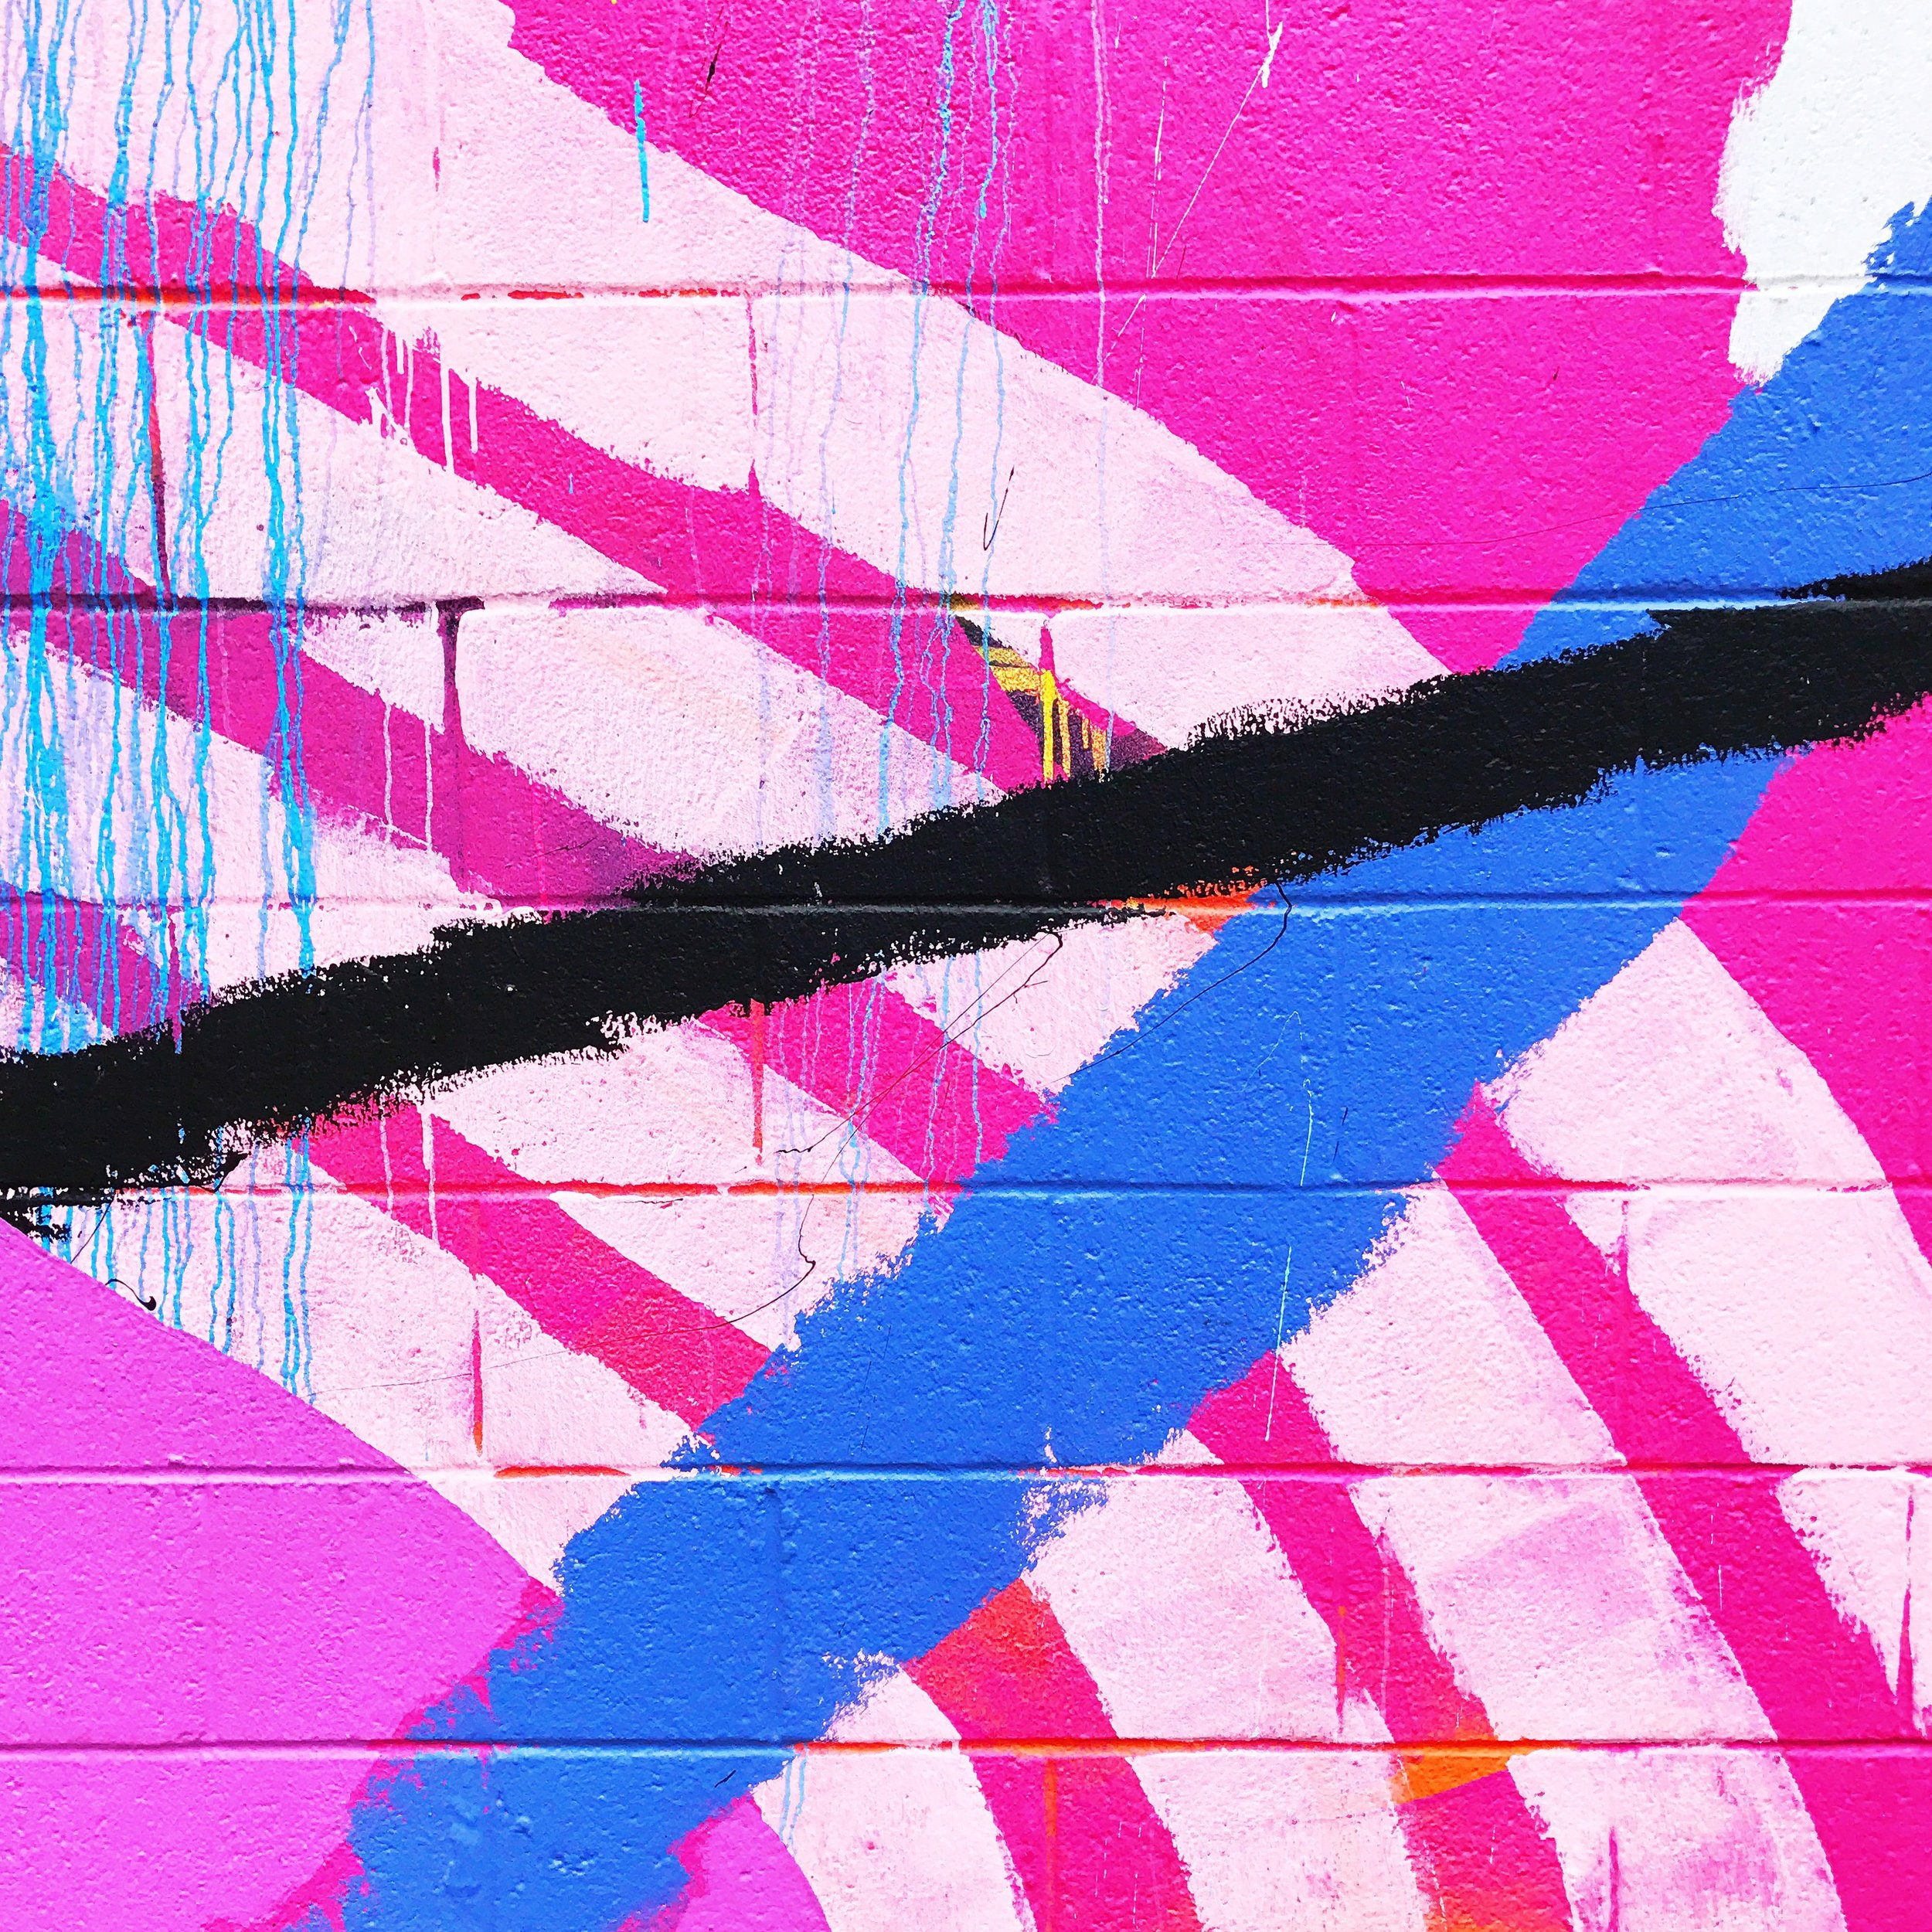 brightpinkblueblackabstract